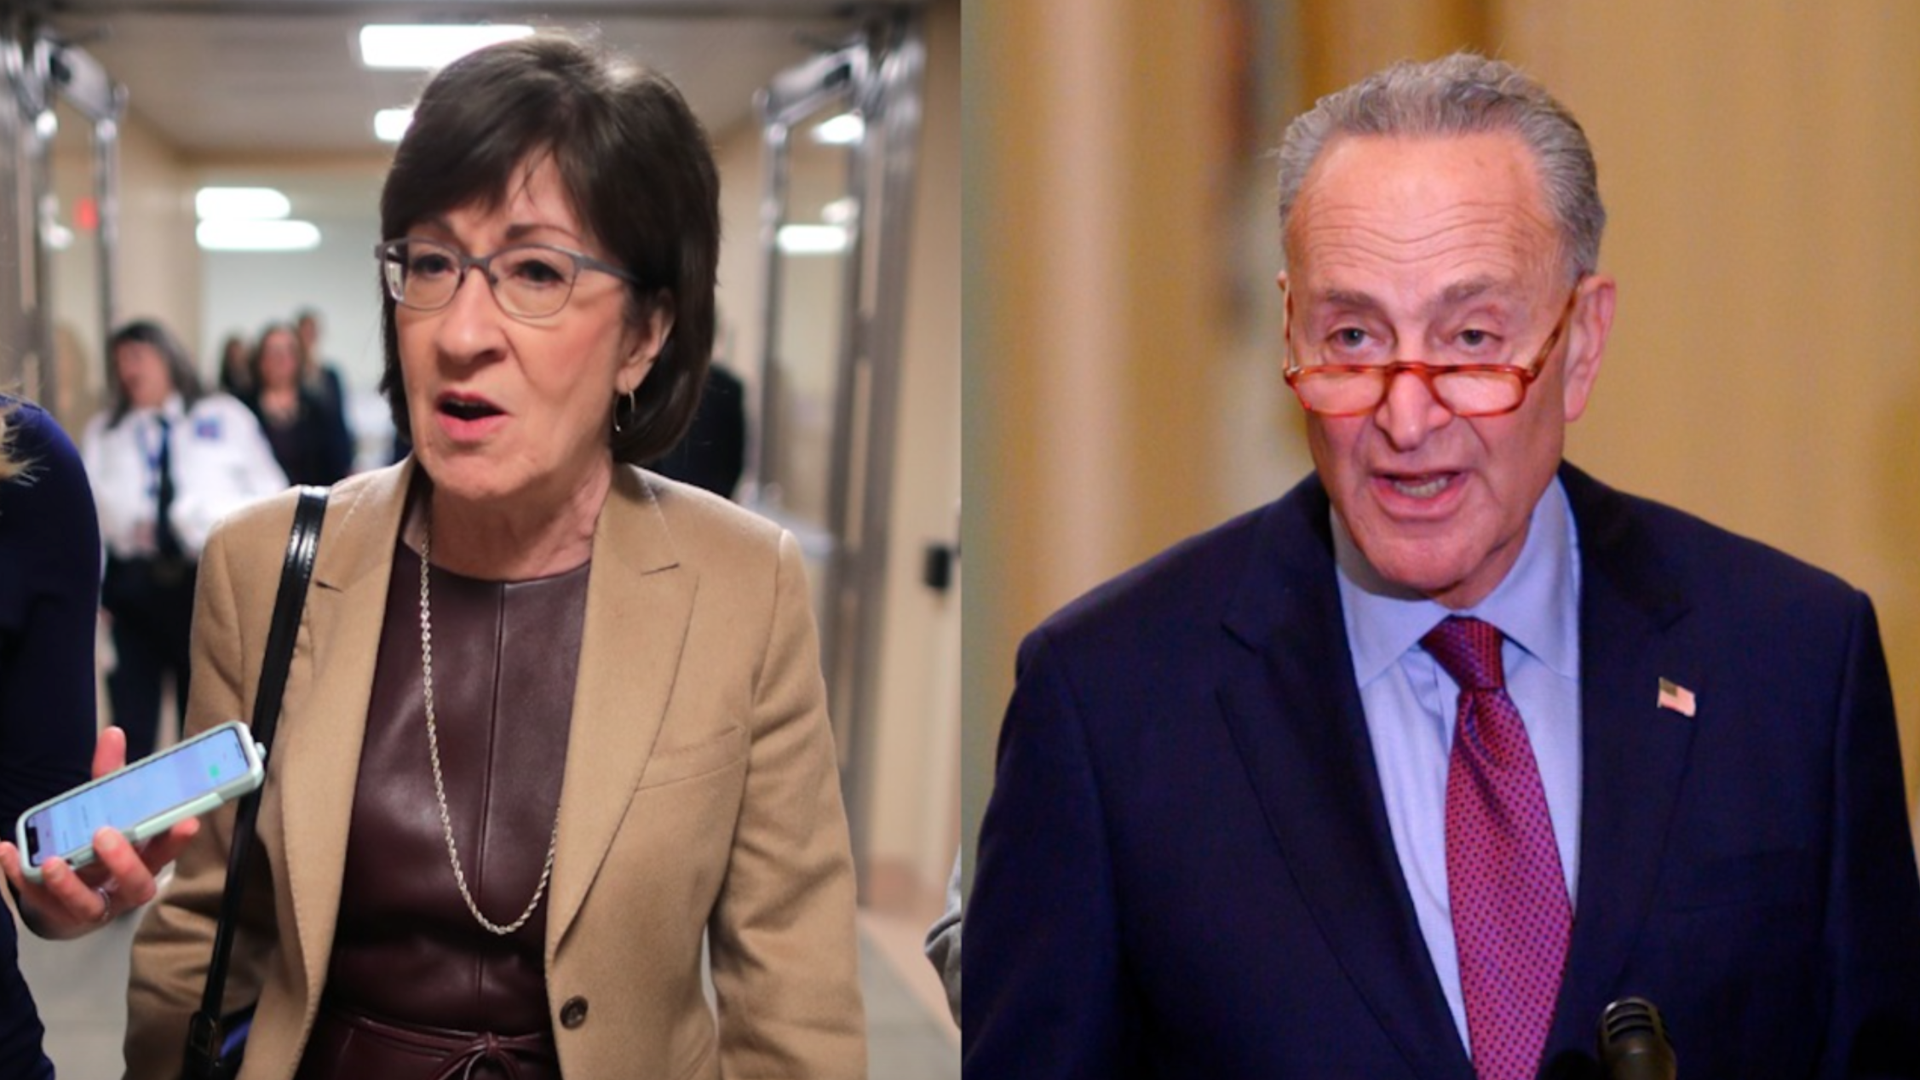 Photos of Sens. Susan Collins and Chuck Schumer.